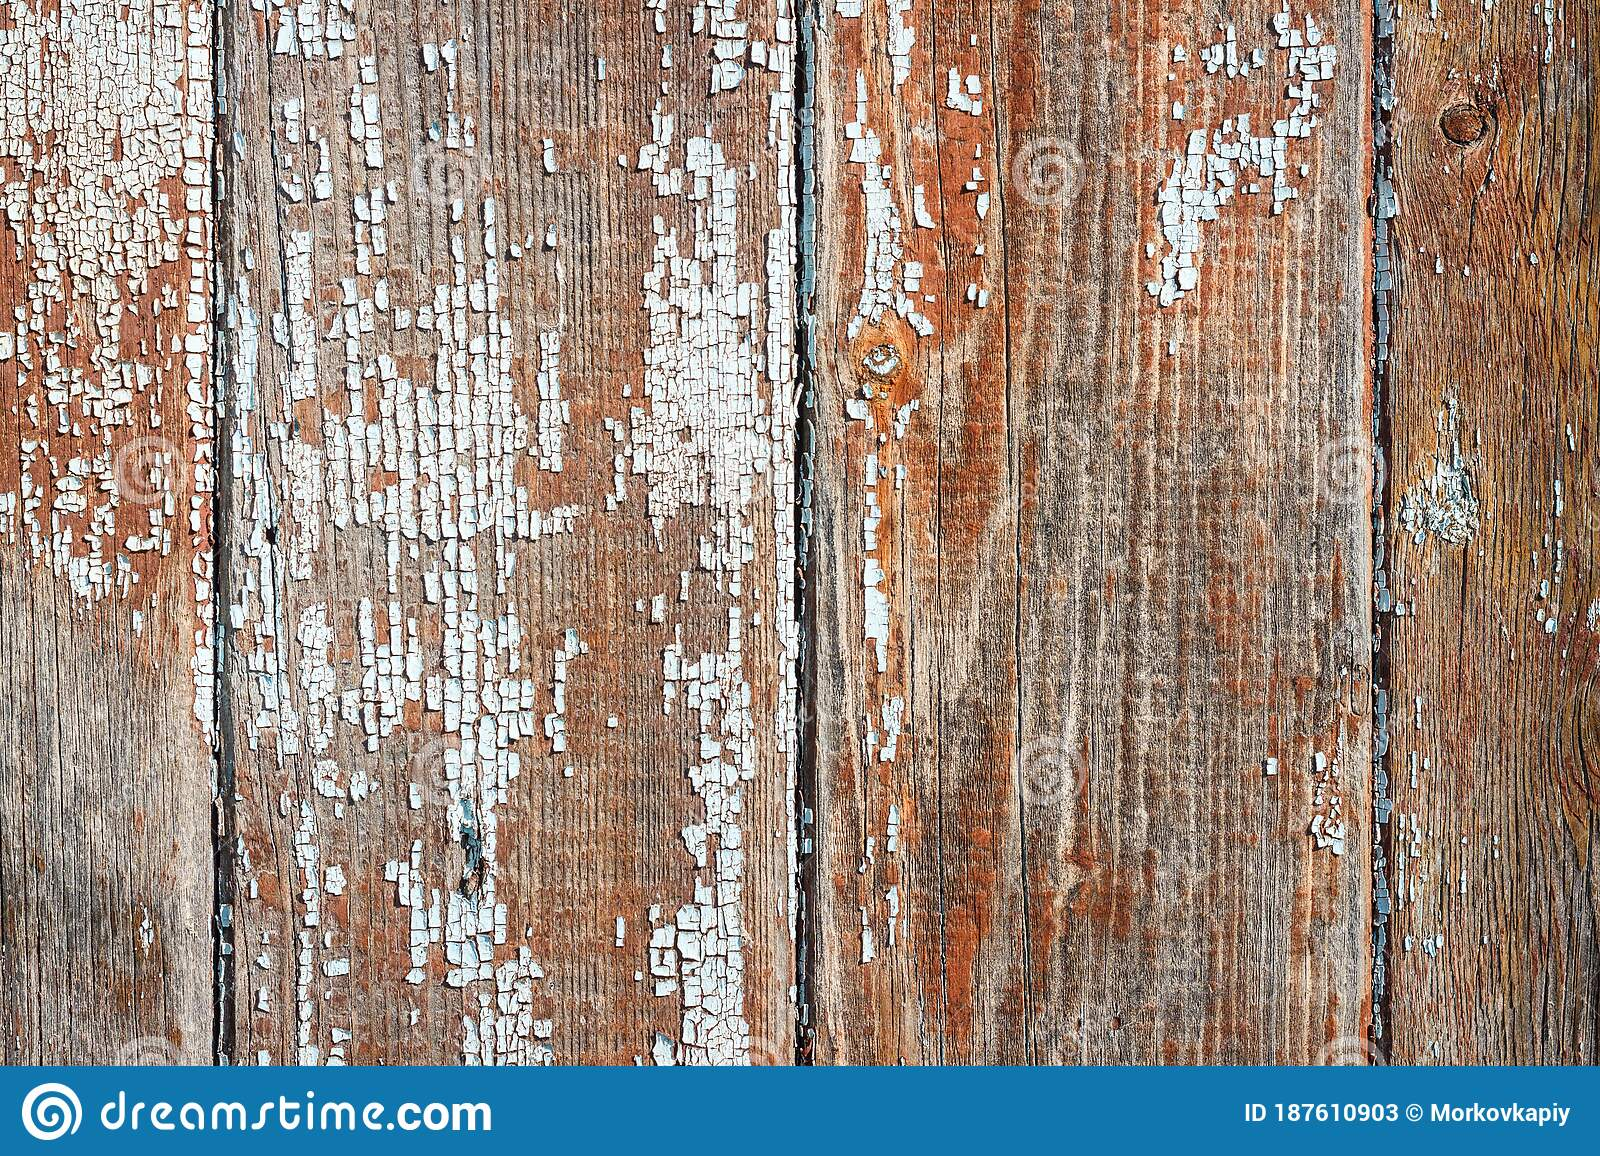 Barn Wooden Wall Paneling Wide Texture Old Solid Wood Slats Rustic Shabby Horizontal Background Stock Image Image Of Panel Blue 187610903